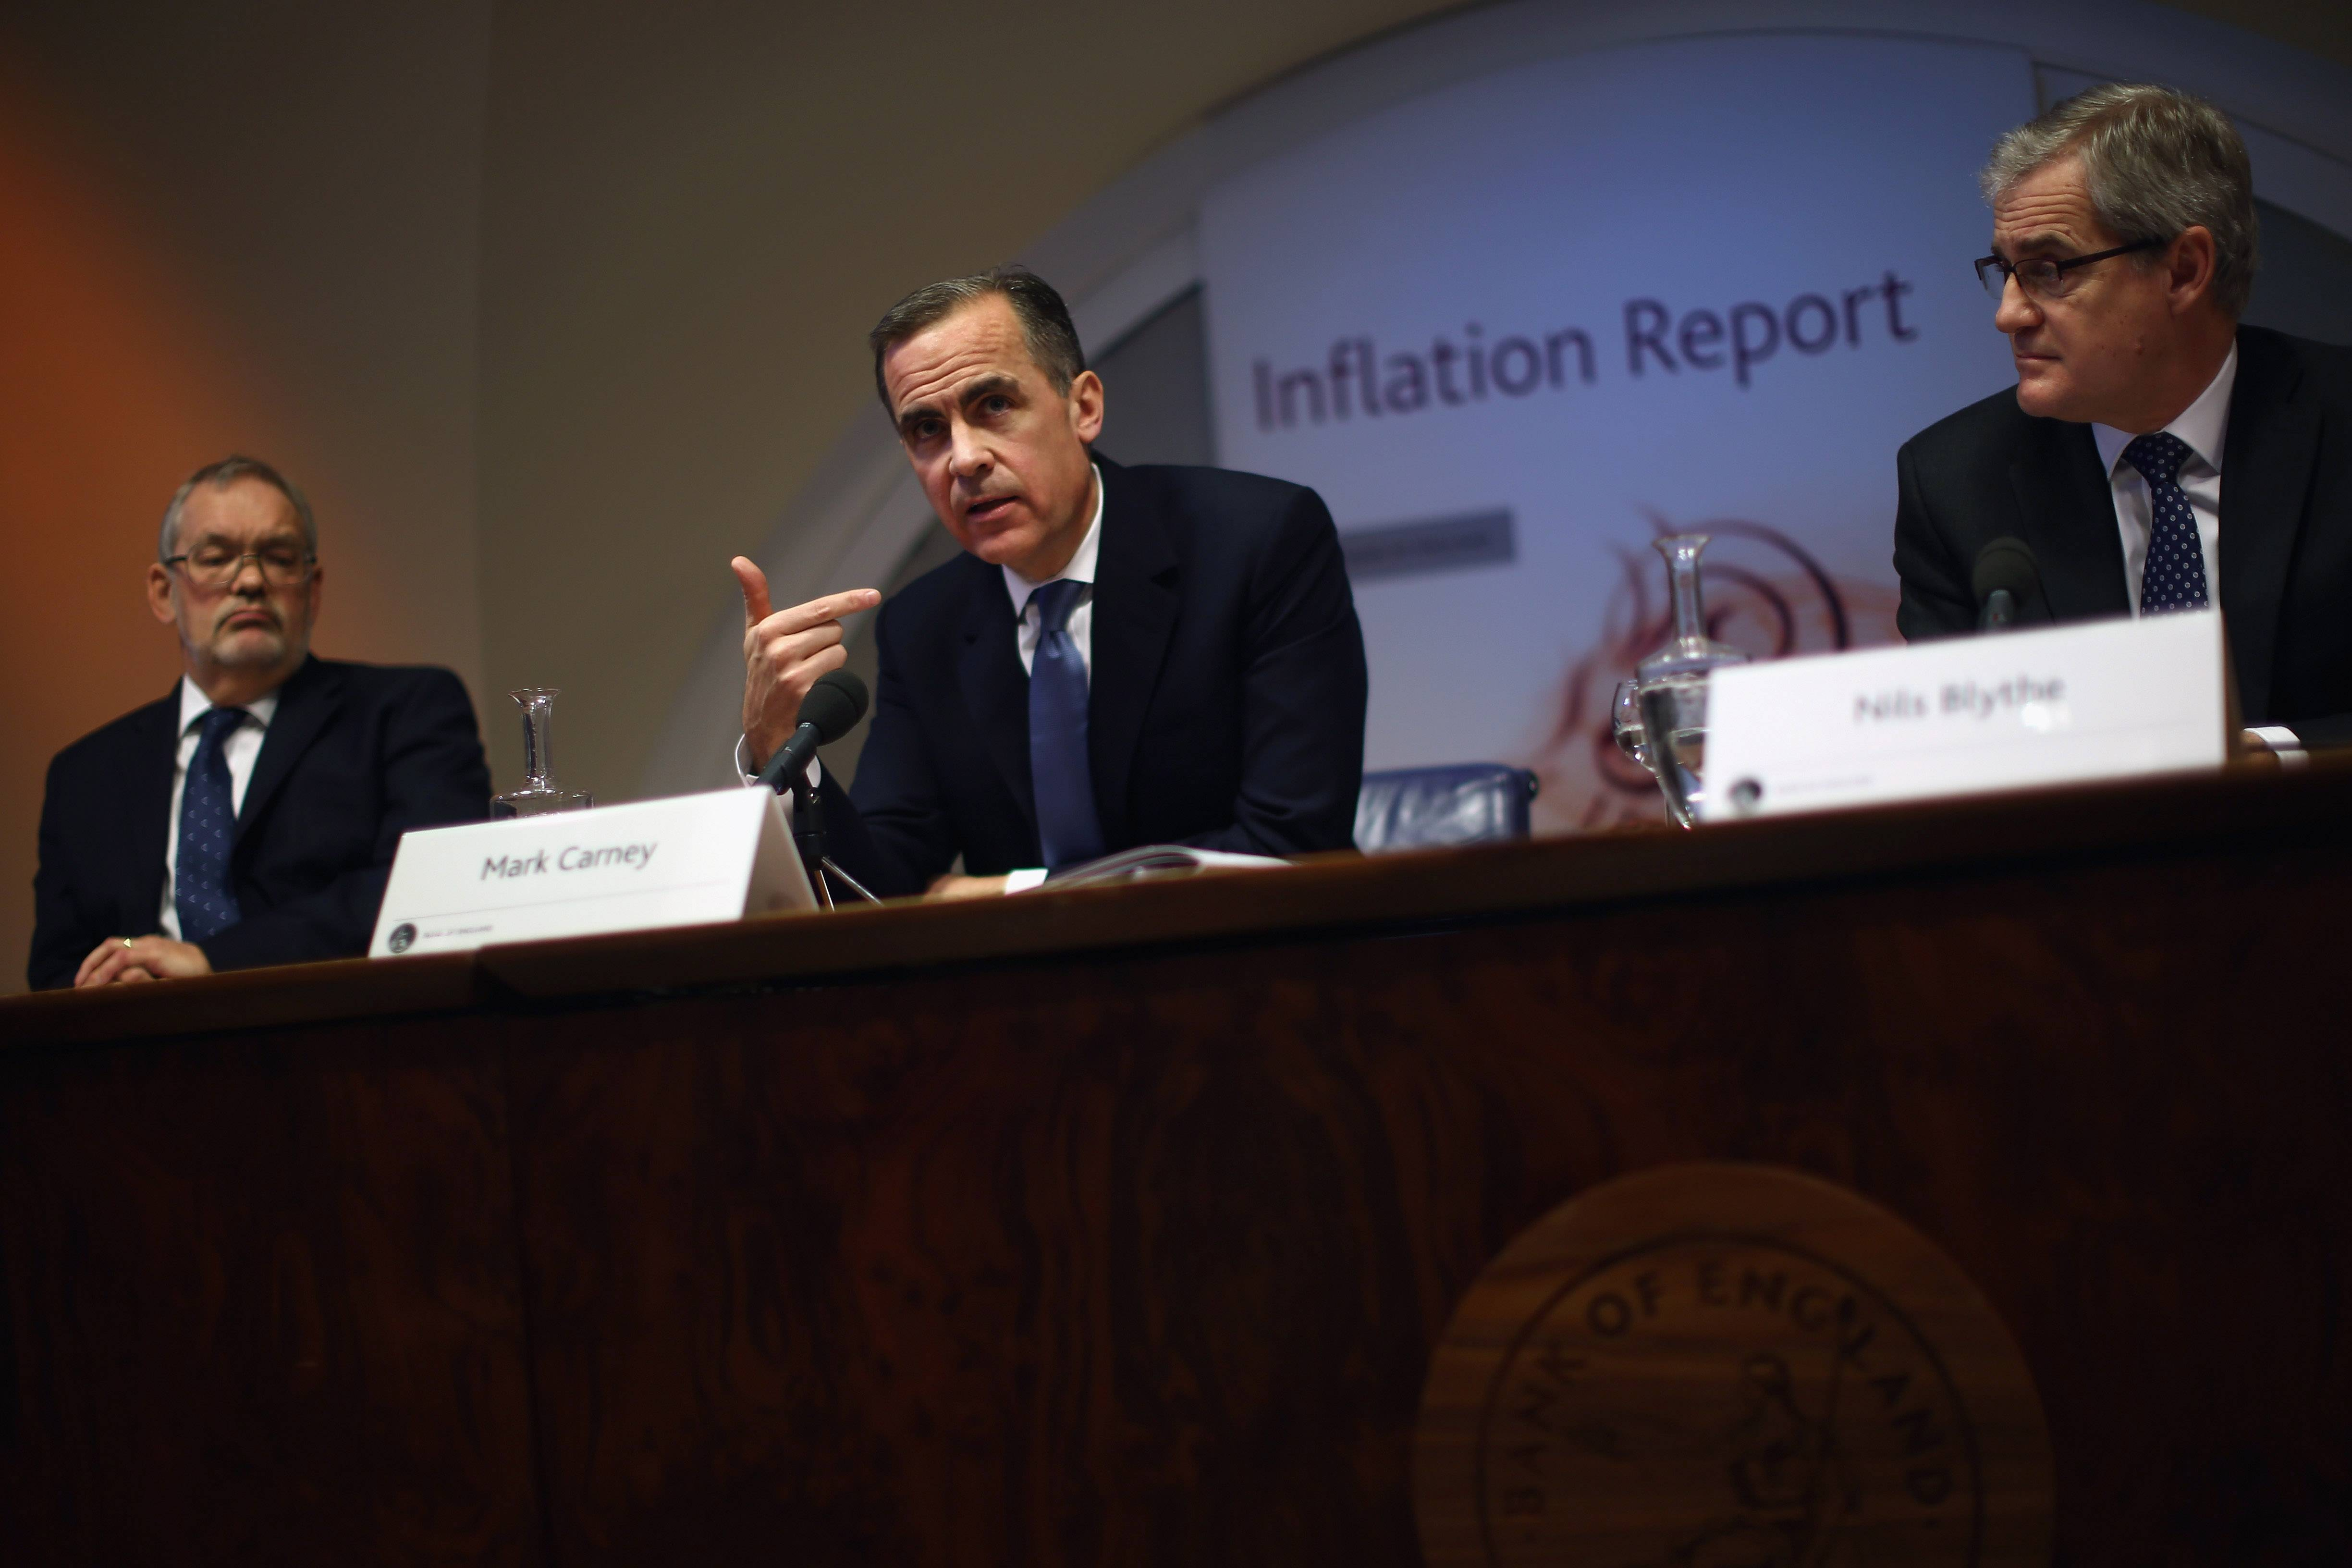 Bank of England Governor Mark Carney, center, speaks during the bank's inflation report news conference in London, England,n Wednesday.